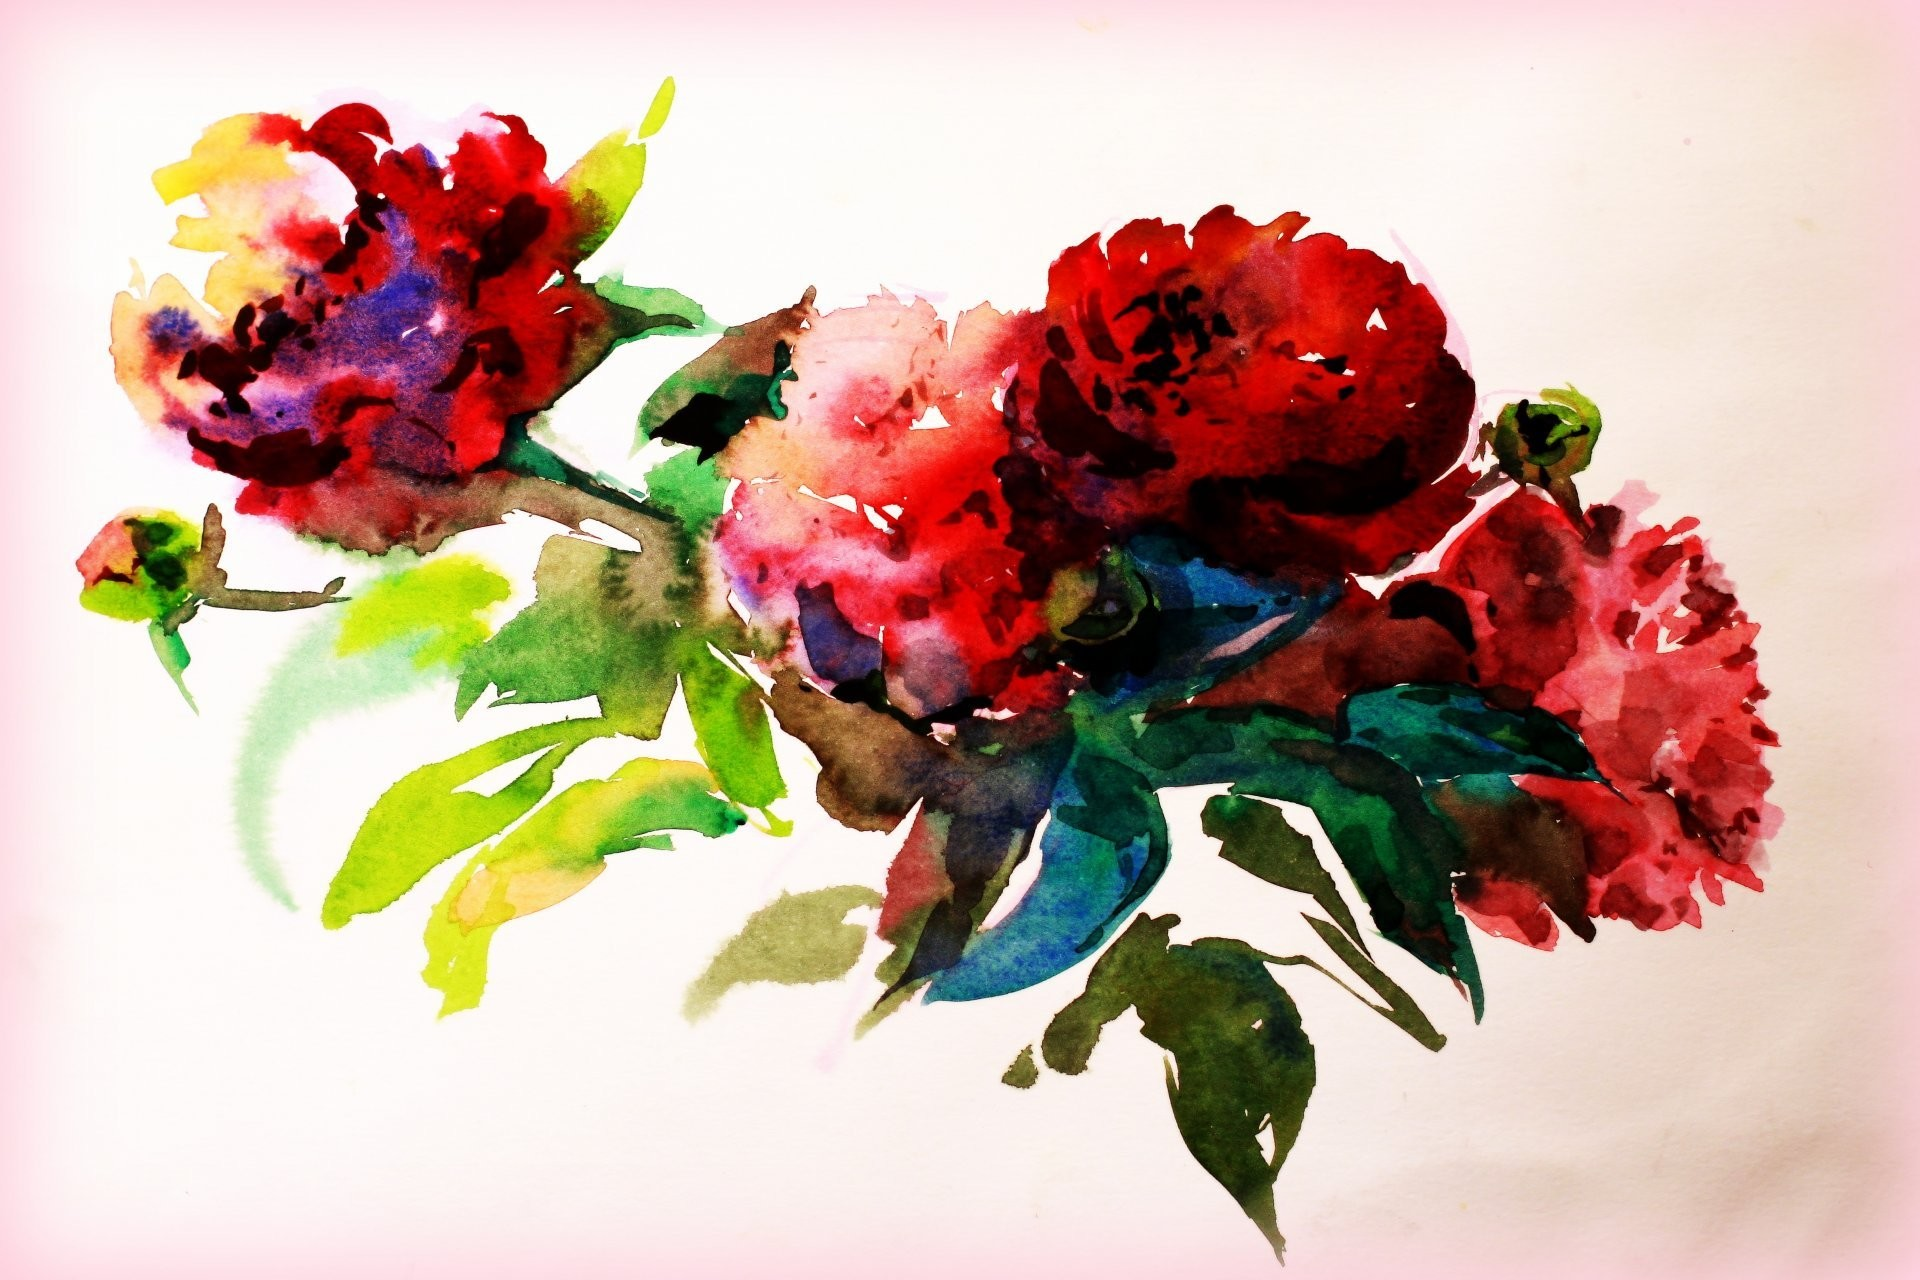 watercolor painting picture paint flower creativity drawing paper